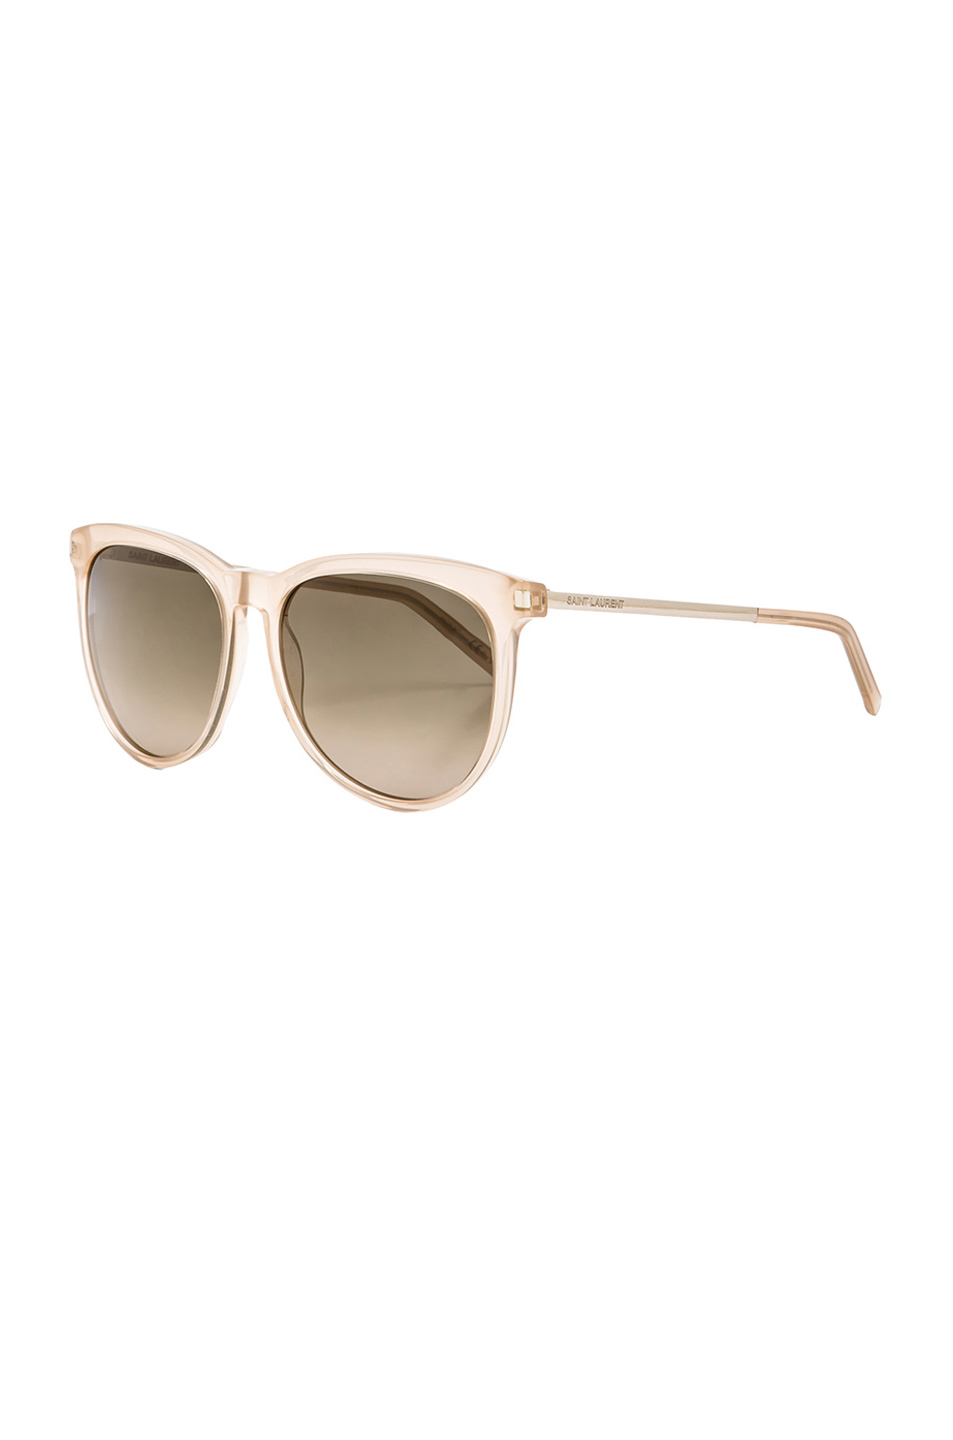 SAINT LAURENT - 24 SUNGLASSES